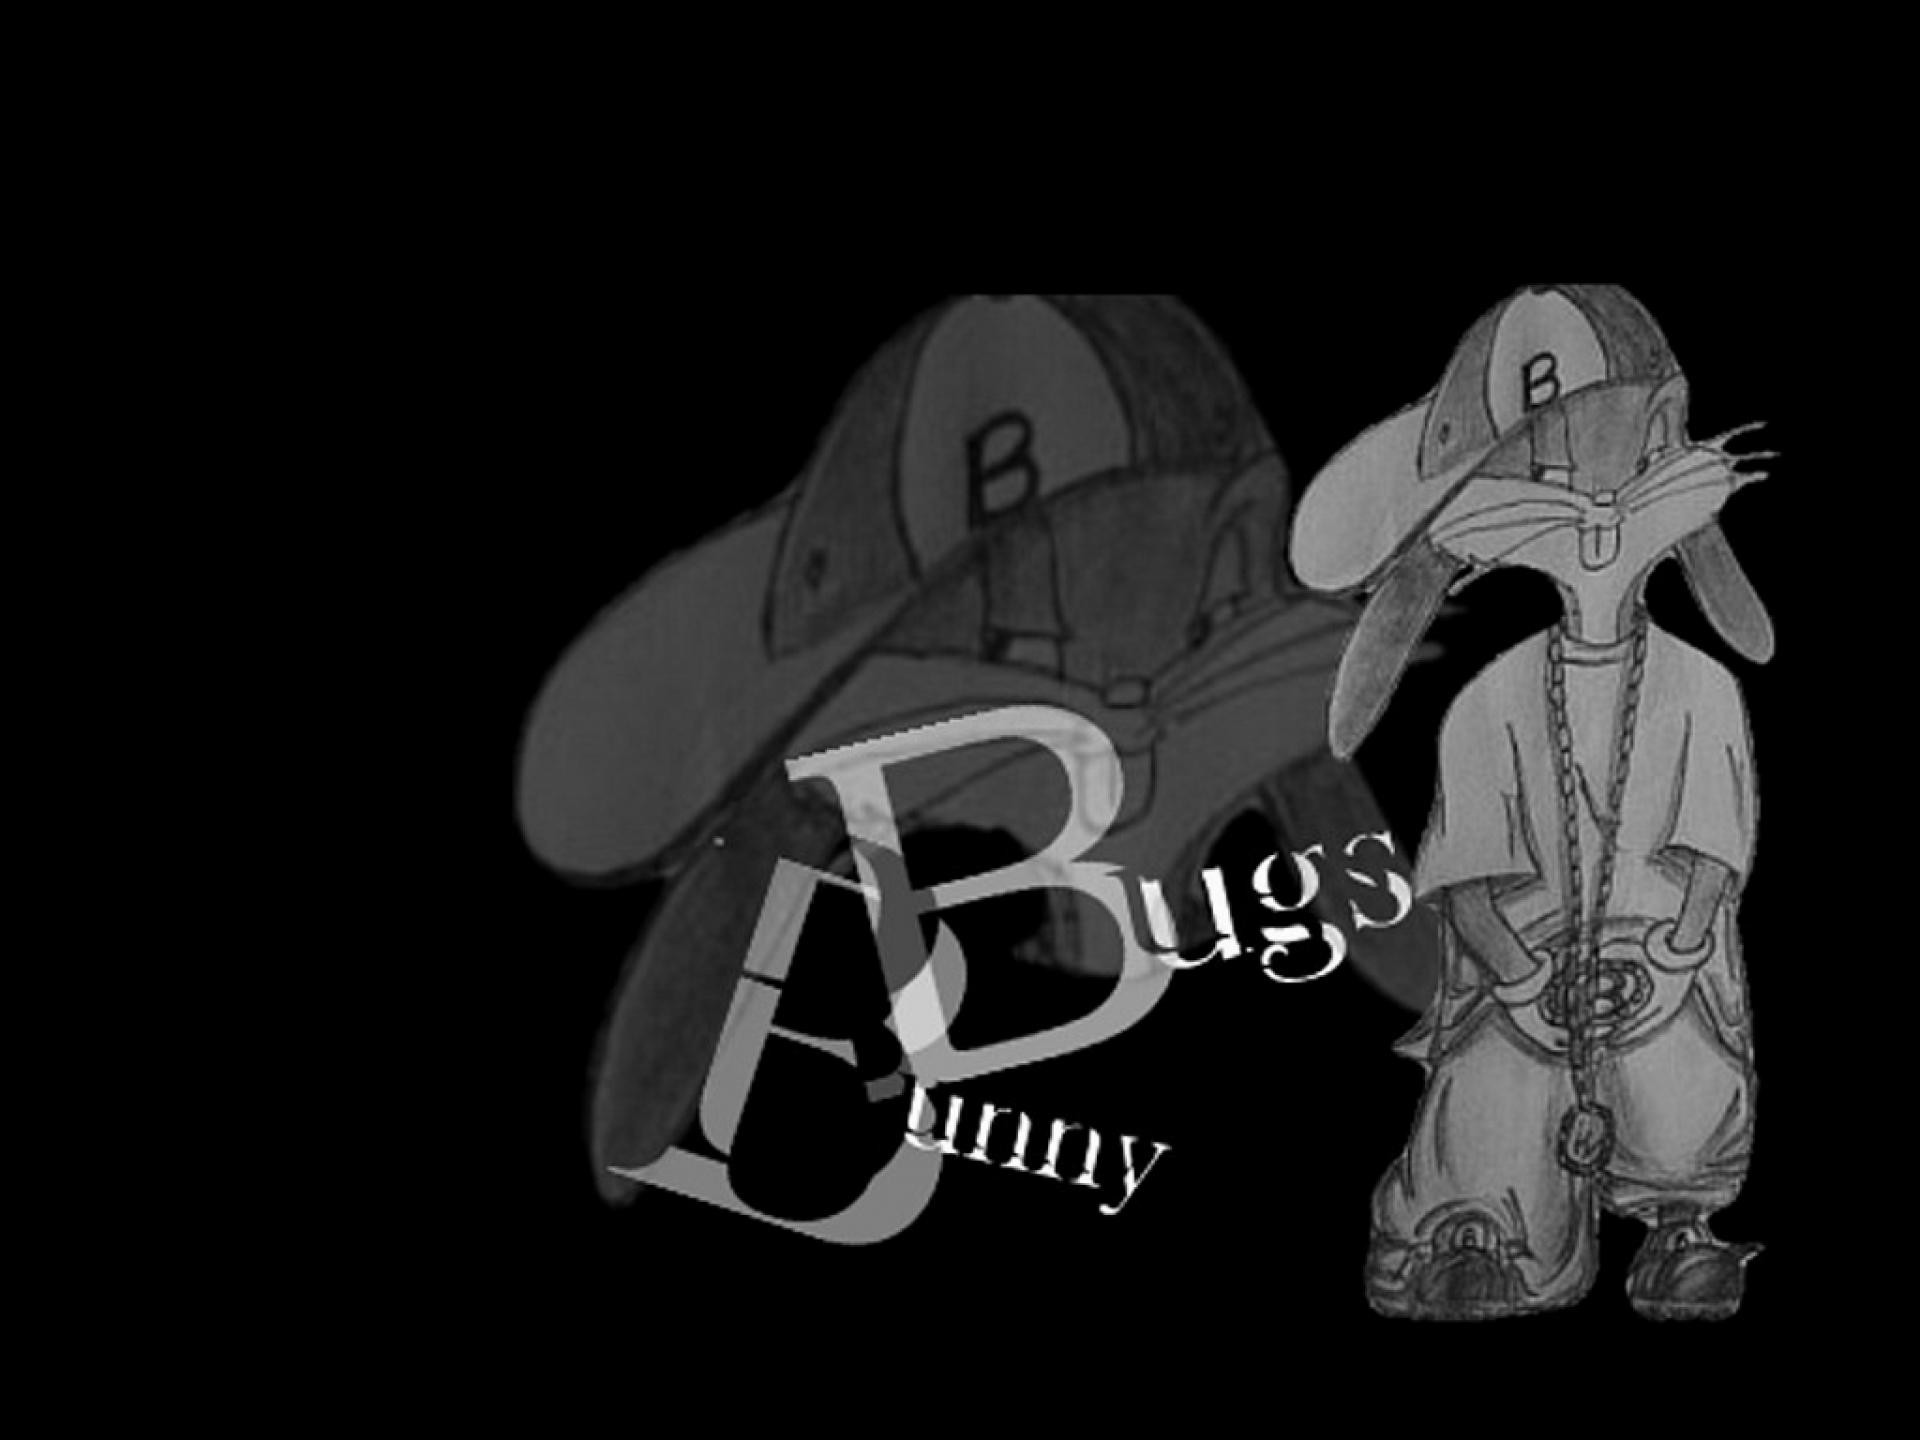 wallpaper.wiki-HD-Bugs-Bunny-Backgrounds-PIC-WPE0011491